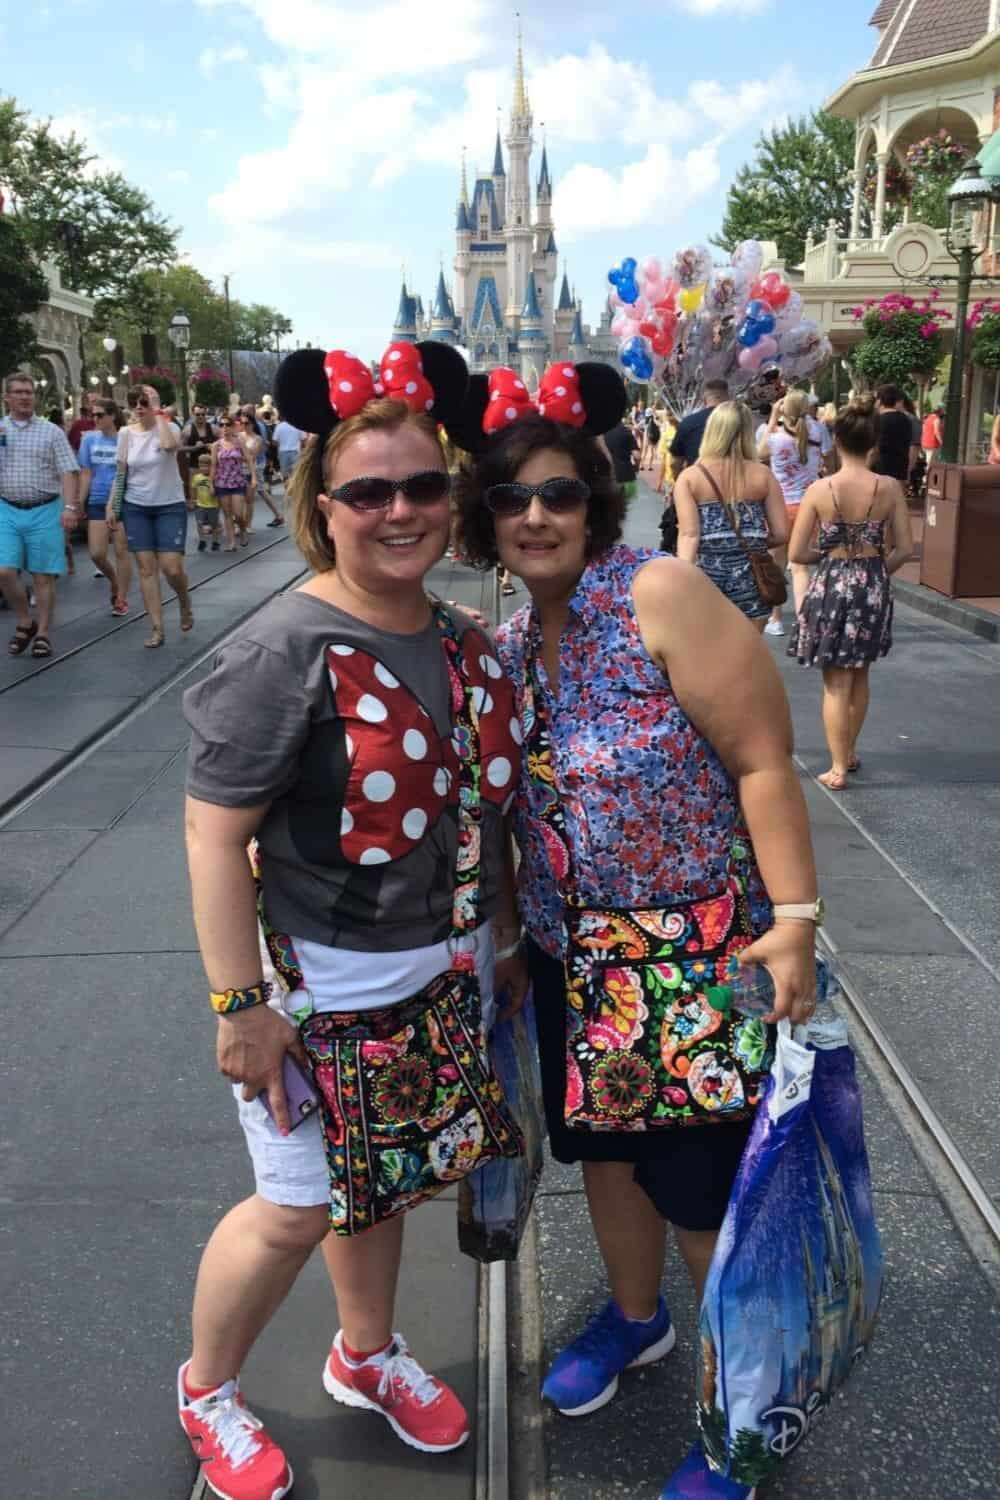 An adult-only Walt Disney World trip is something everyone should do at least once. This planning guide, Disney World for Adults: a Kid-Free Guide to Disney Fun, will help you plan a magical kid-free Disney World trip. #disneyworld #disneytips #disneypackinglist #wdw